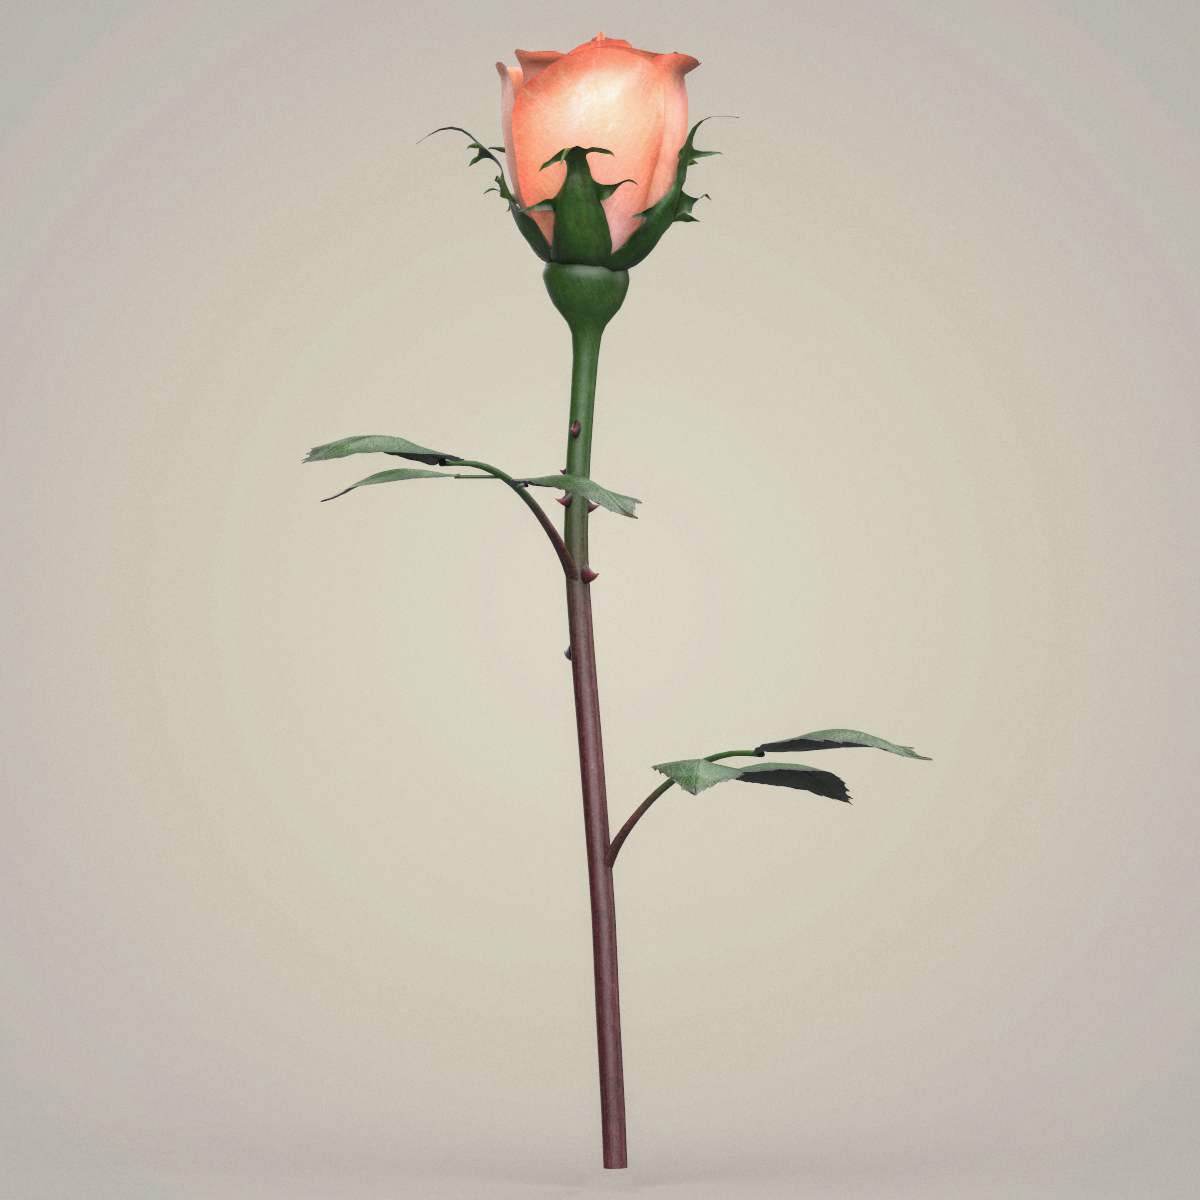 rose flower collection 3d model max fbx c4d ma mb obj 252765